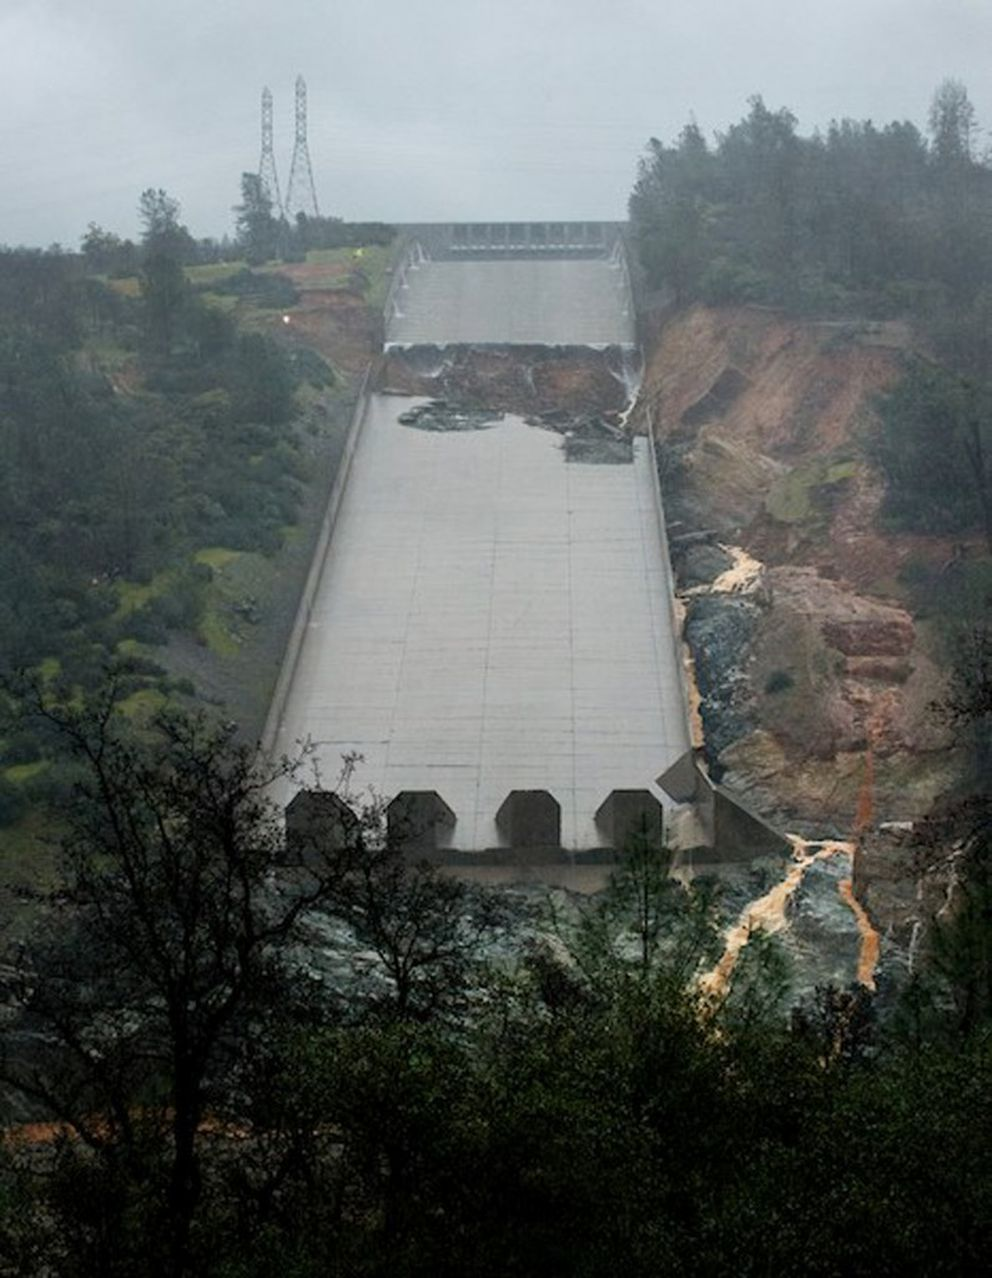 The area of erosion on the lower half of the Oroville Dam spillway is seen after overnight test flows in Oroville, California, U.S. February 9, 2017. California Department of Water Resources/Kelly Grow/Handout via REUTERS ATTENTION EDITORS – THIS IMAGE WAS PROVIDED BY A THIRD PARTY. EDITORIAL USE ONLY.